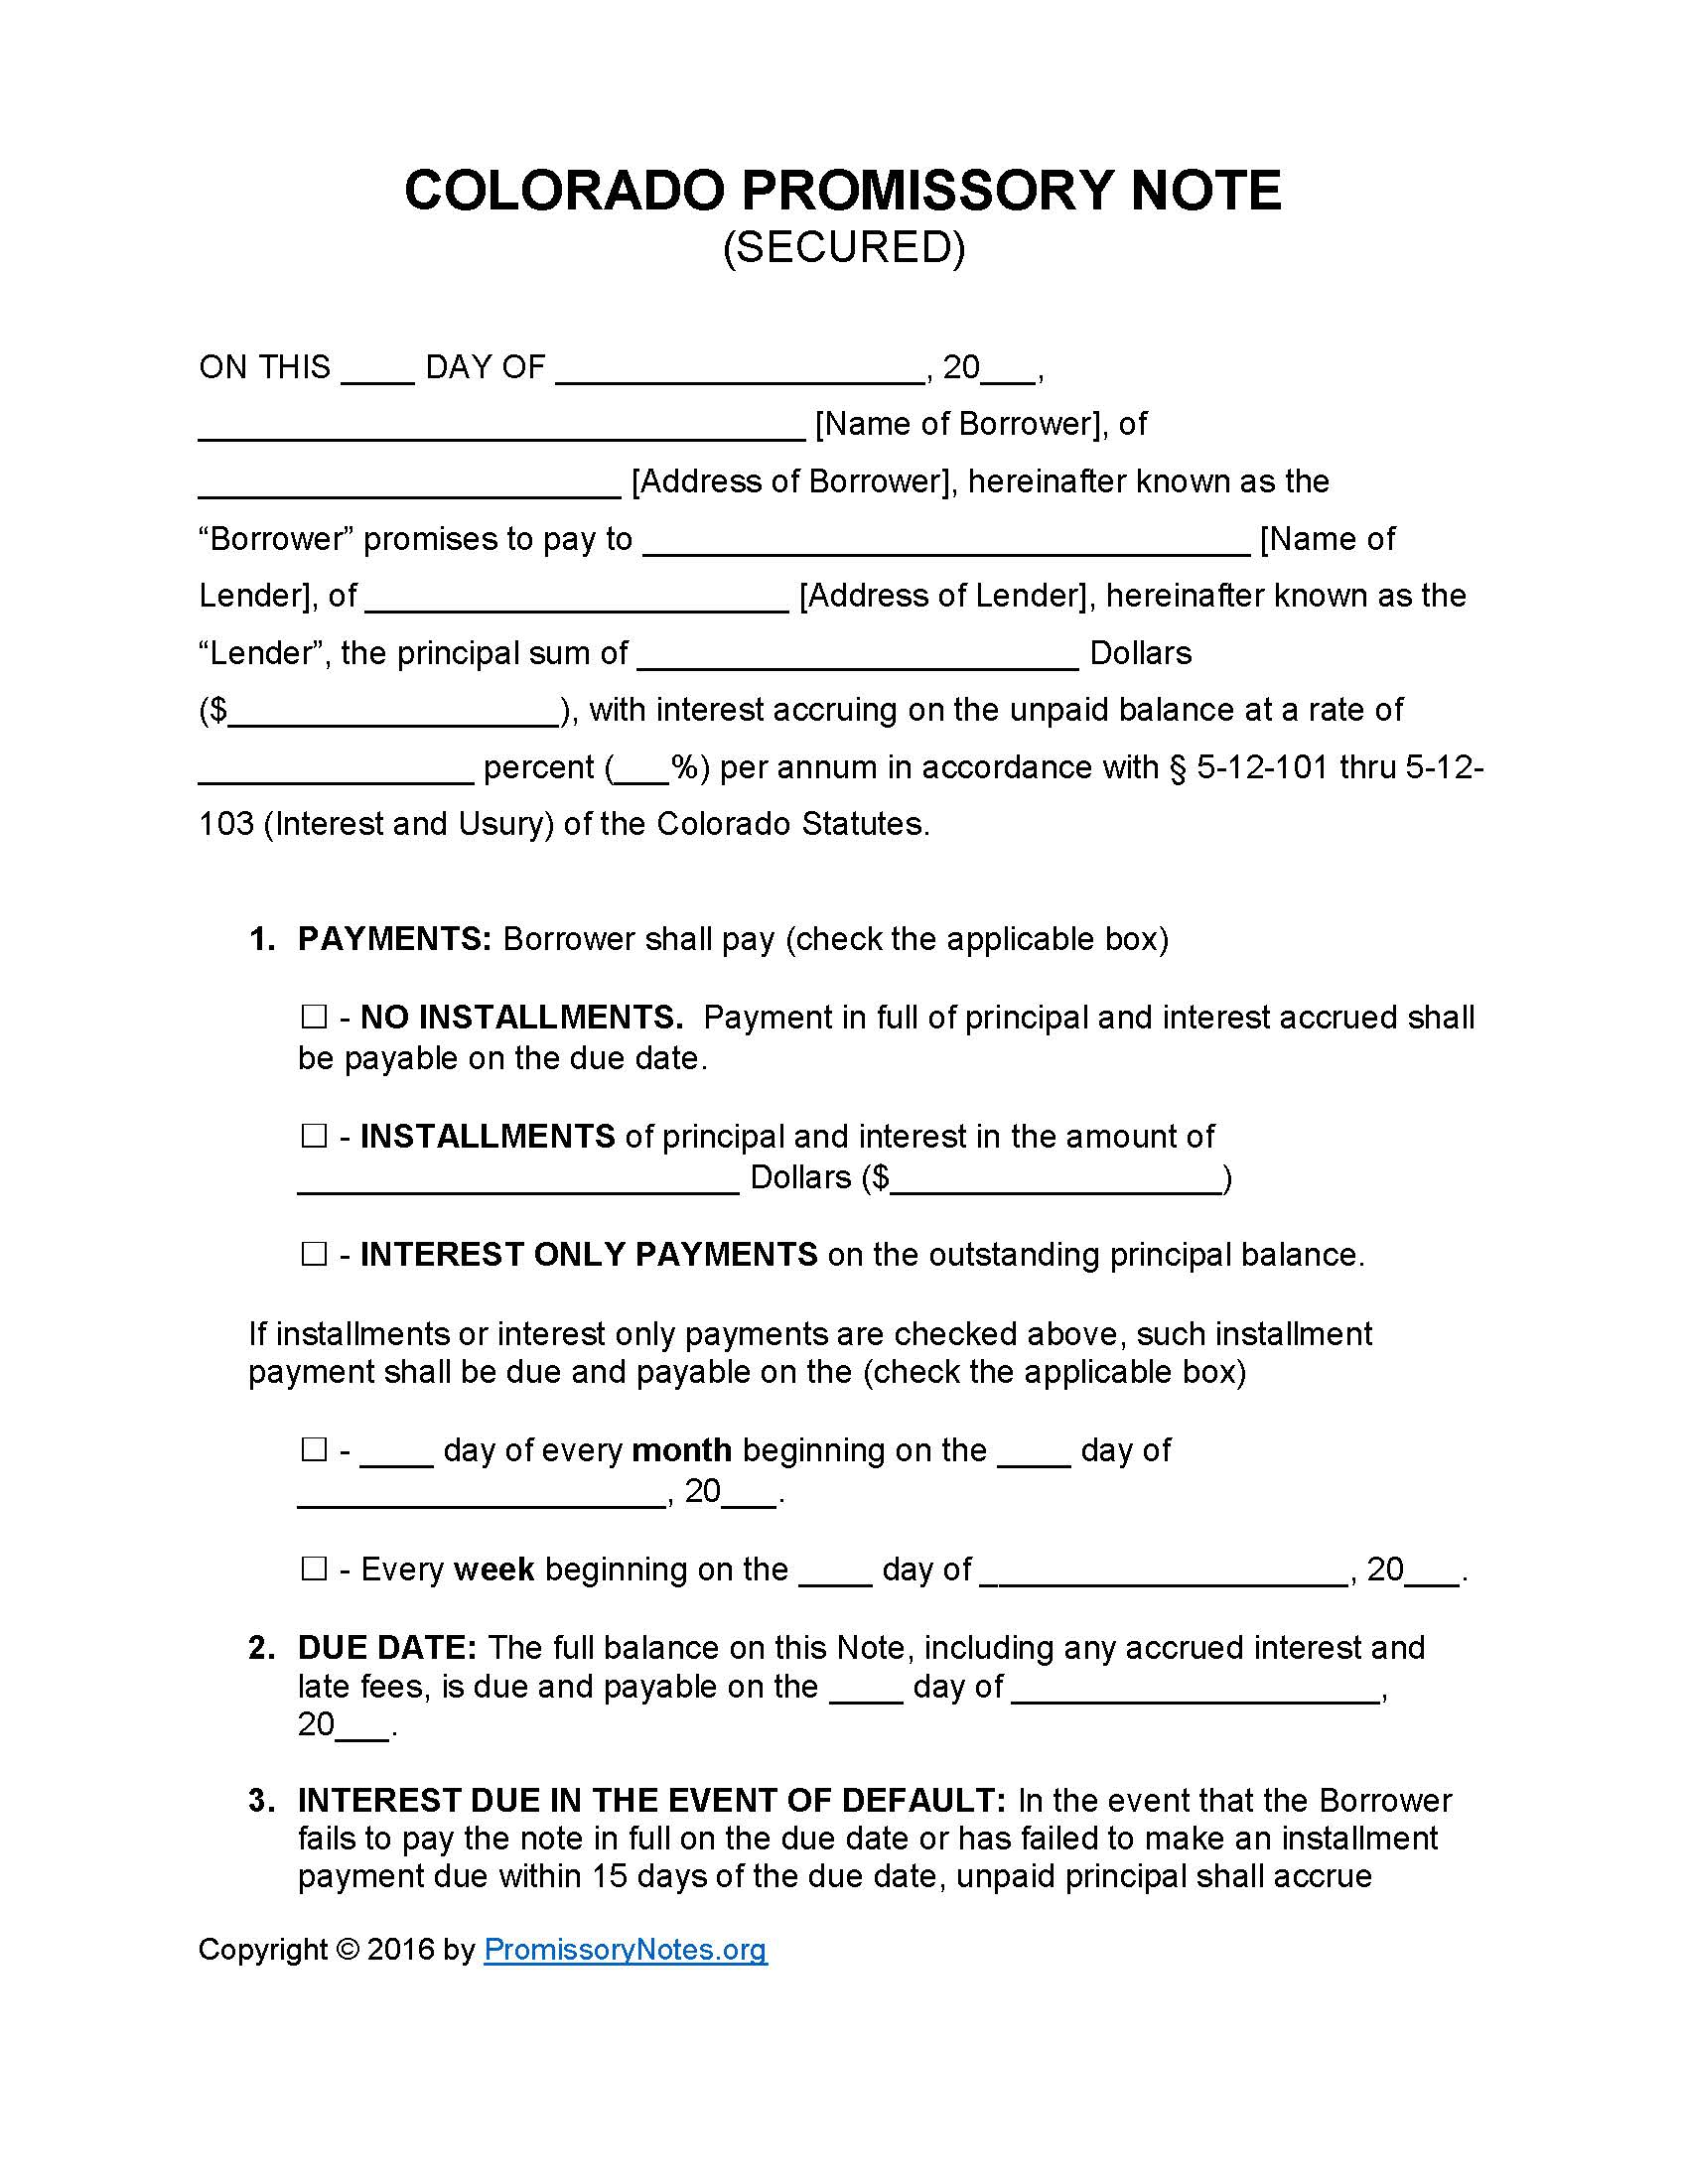 Colorado Secured Promissory Note Template   Promissory Notes : Promissory  Notes  Promissory Note Blank Form